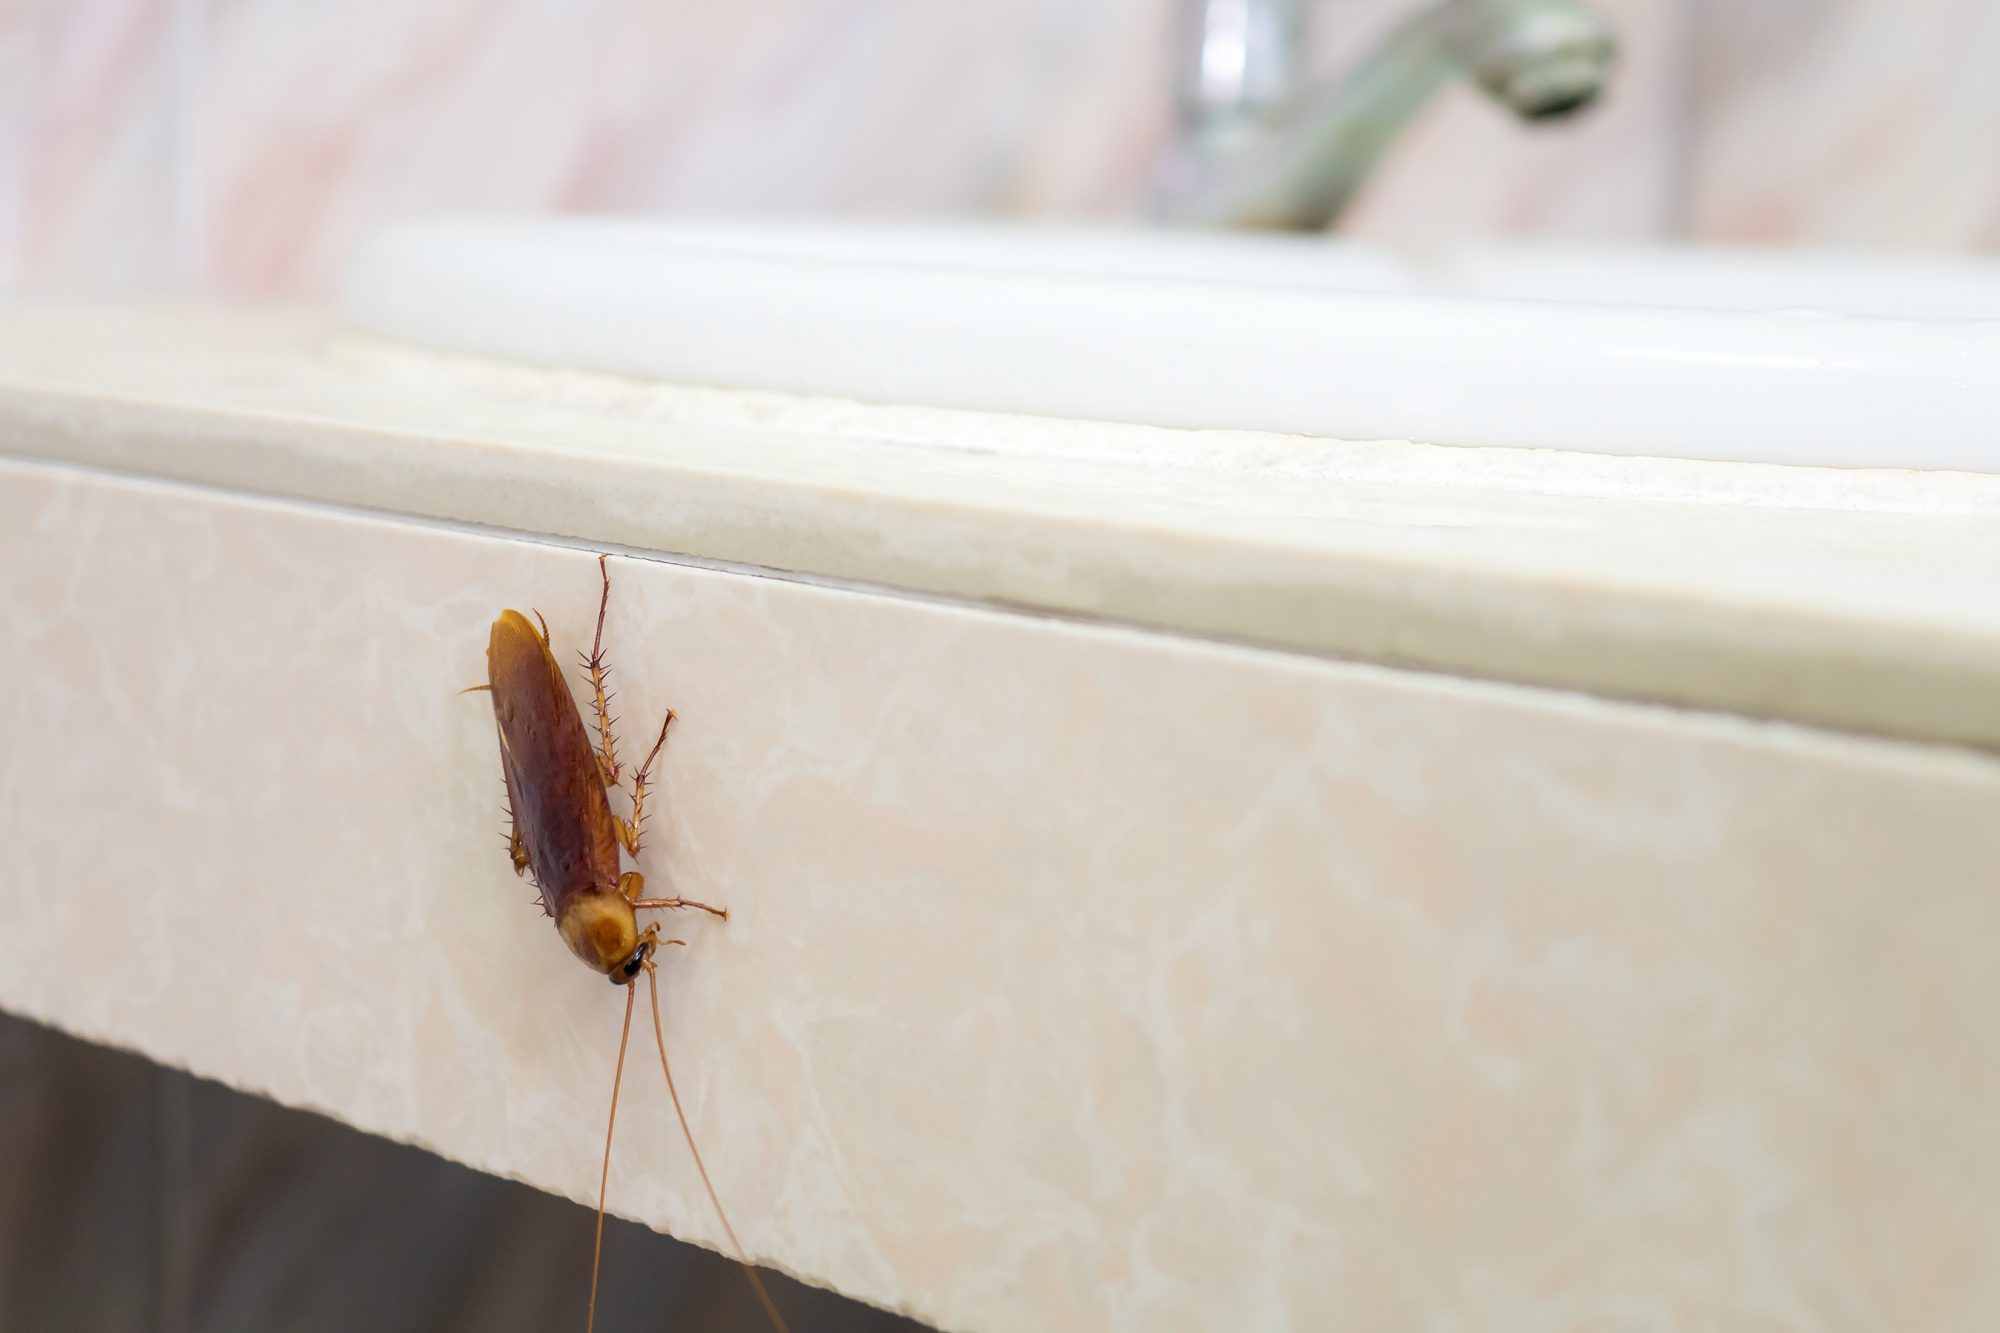 Cockroach in house on background of toilet